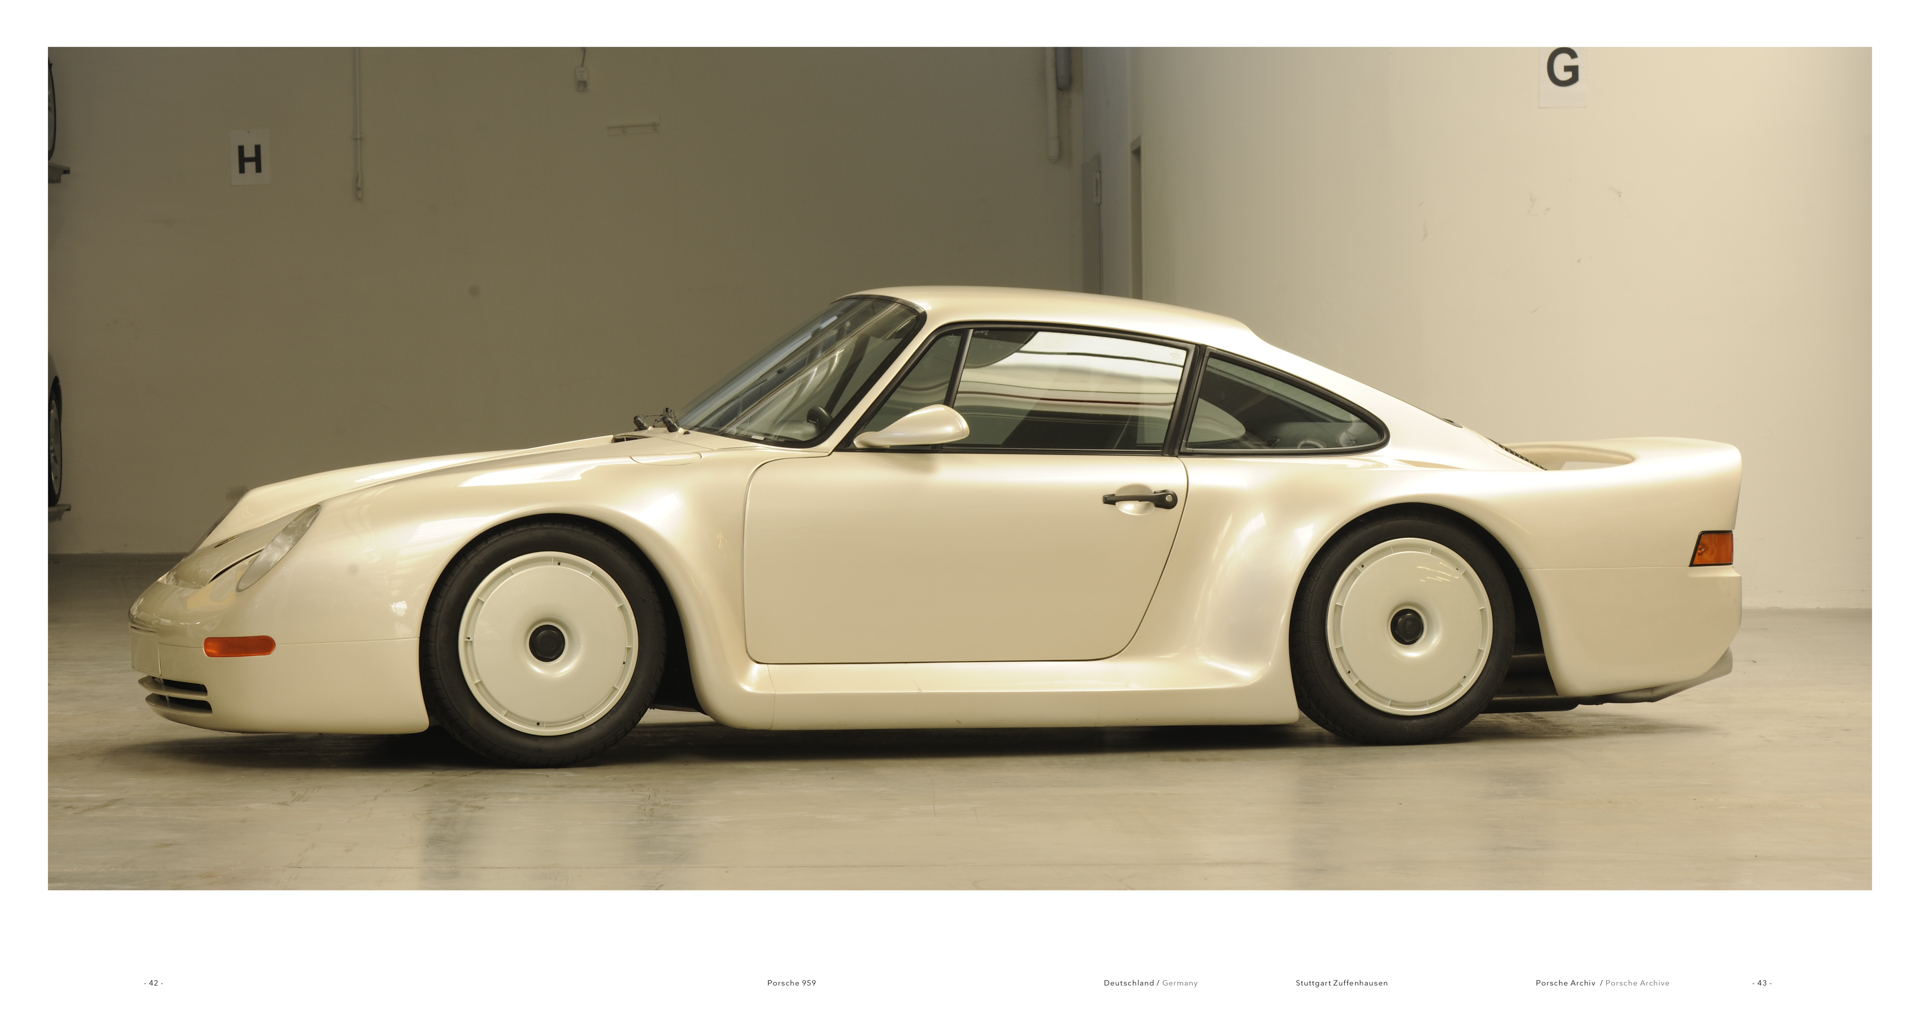 Porsche 959: An Engineering Masterpiece | DrivingLine